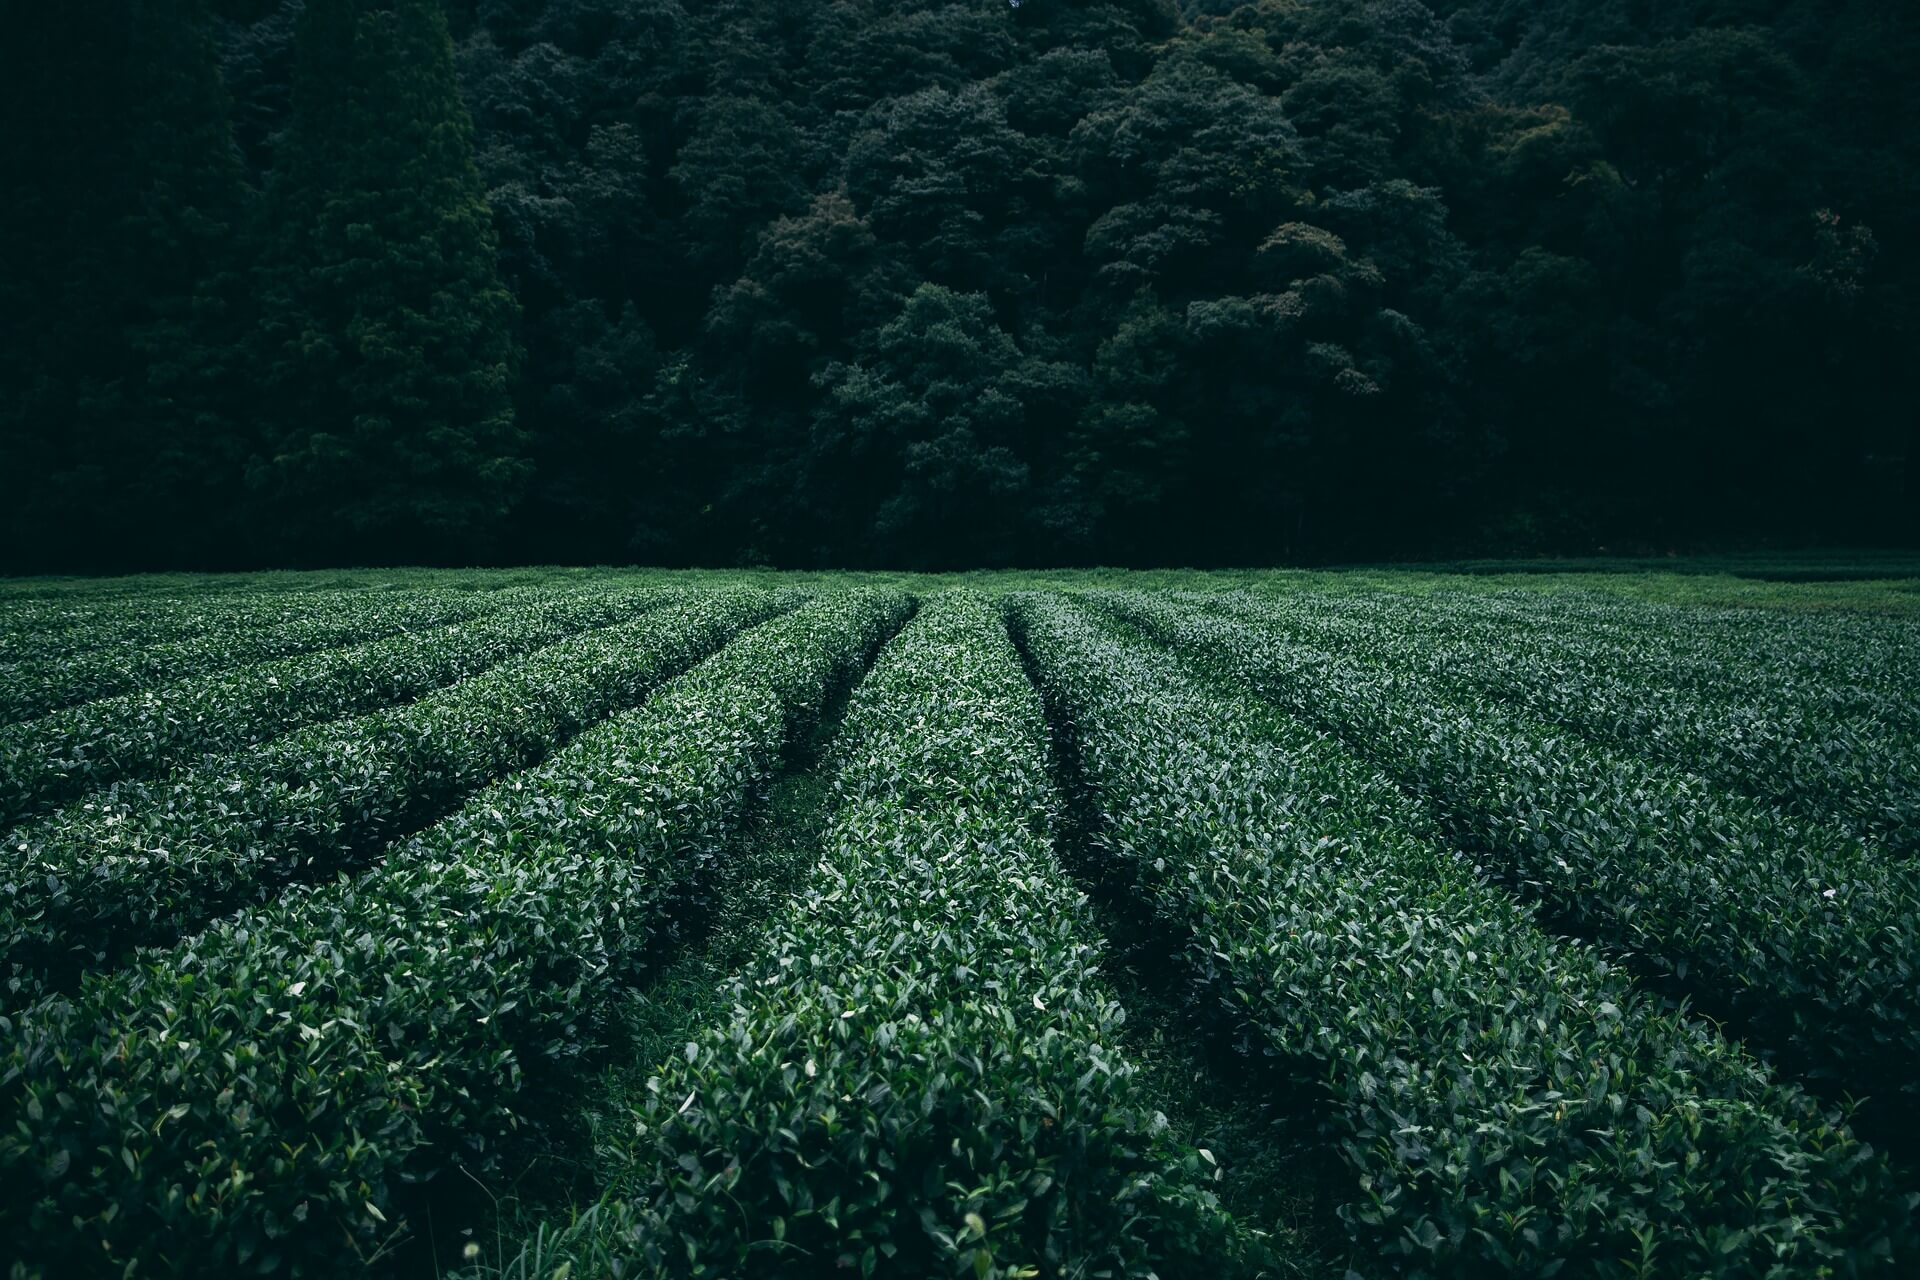 An eye-catching green field ready for harvest in front of a dark, deep jungle.